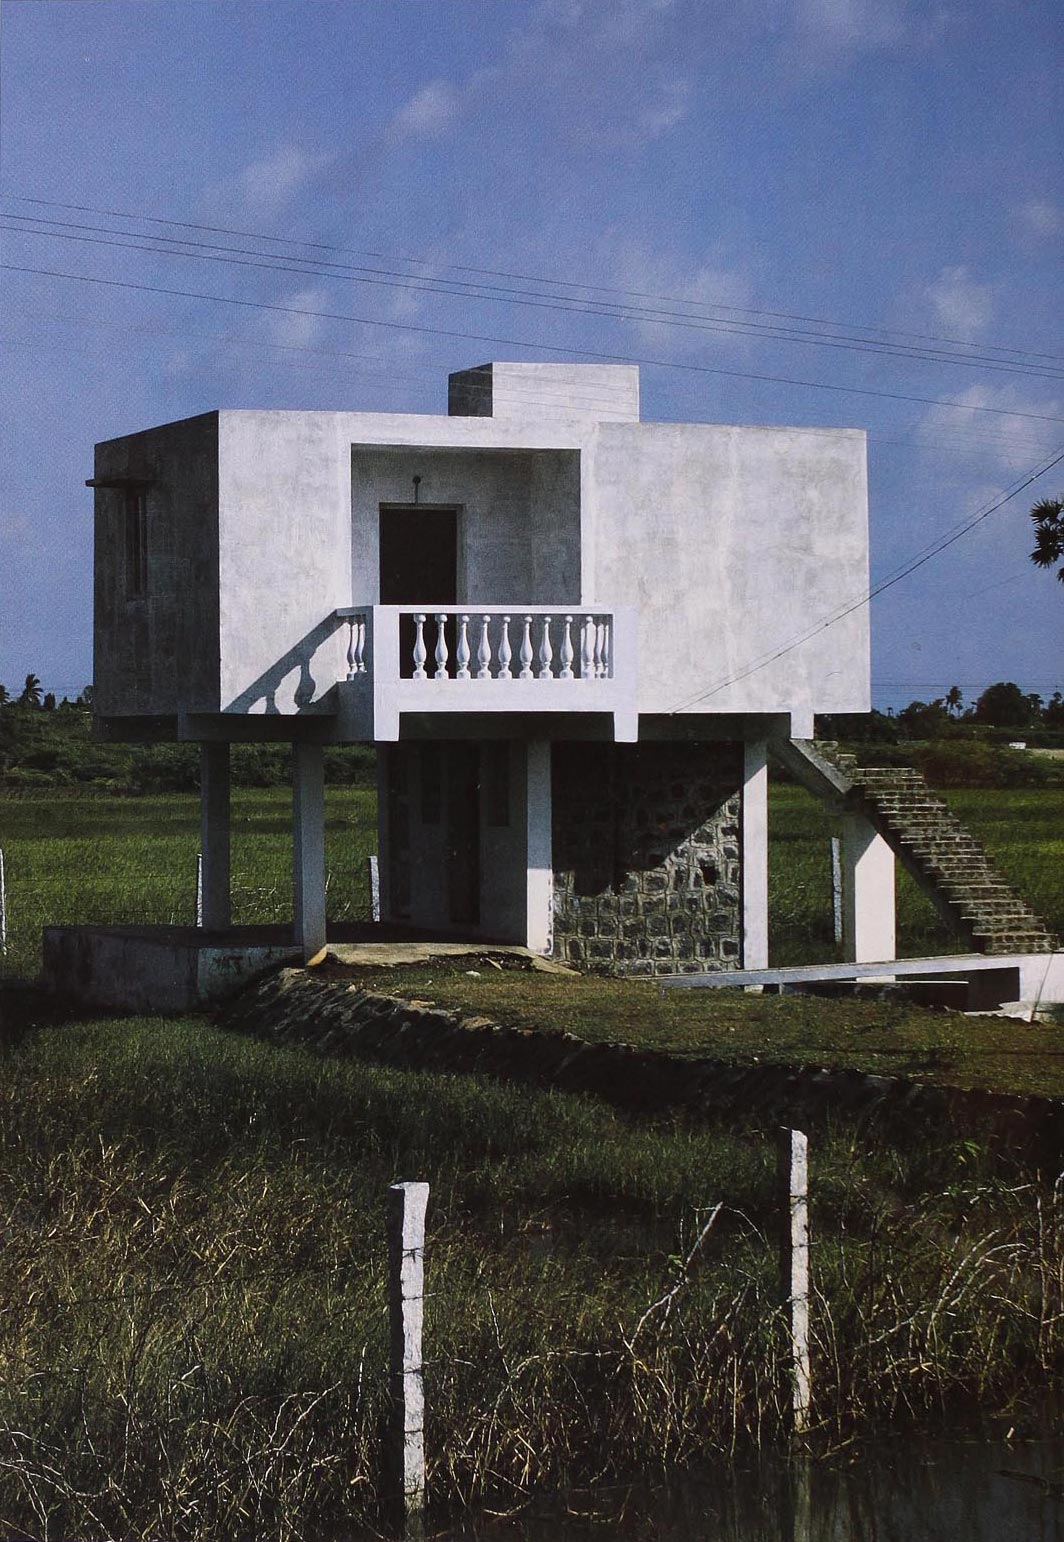 between Madras and Mahabalipuram, India, 1987. Photograph by E.Sottsass